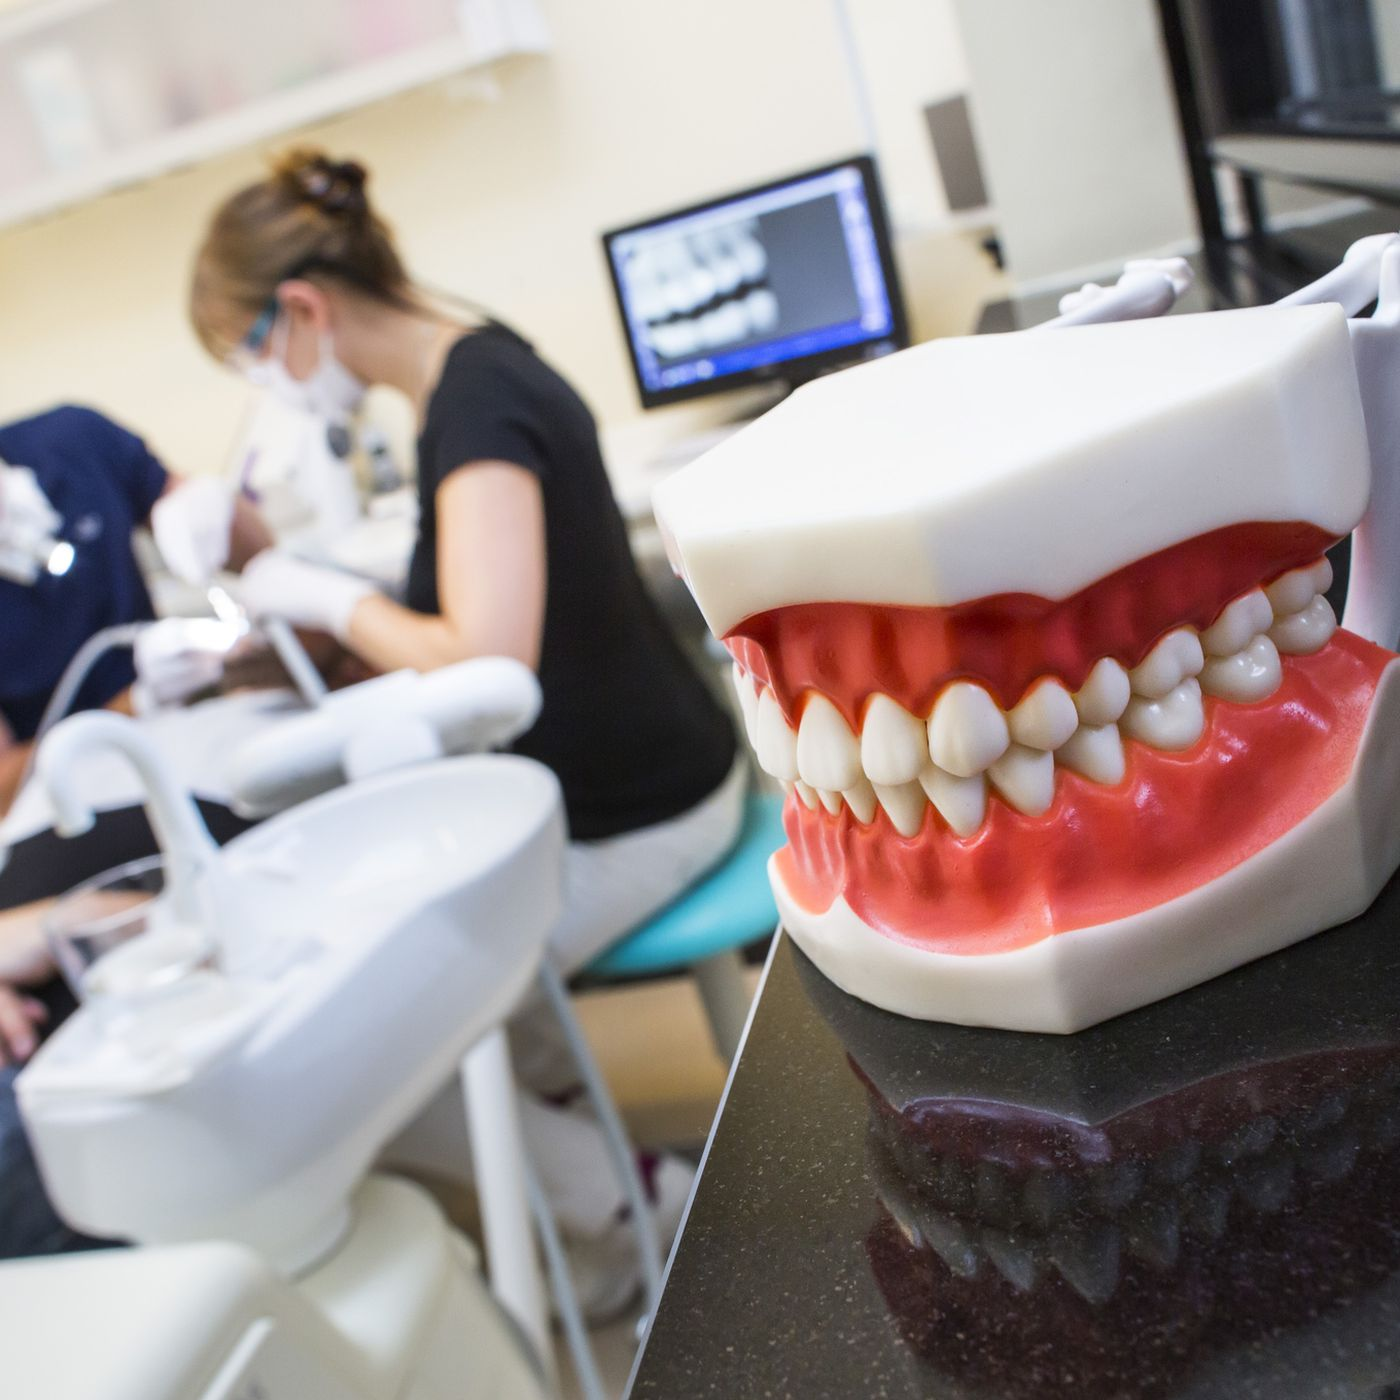 How to avoid getting ripped off by the dentist - Vox